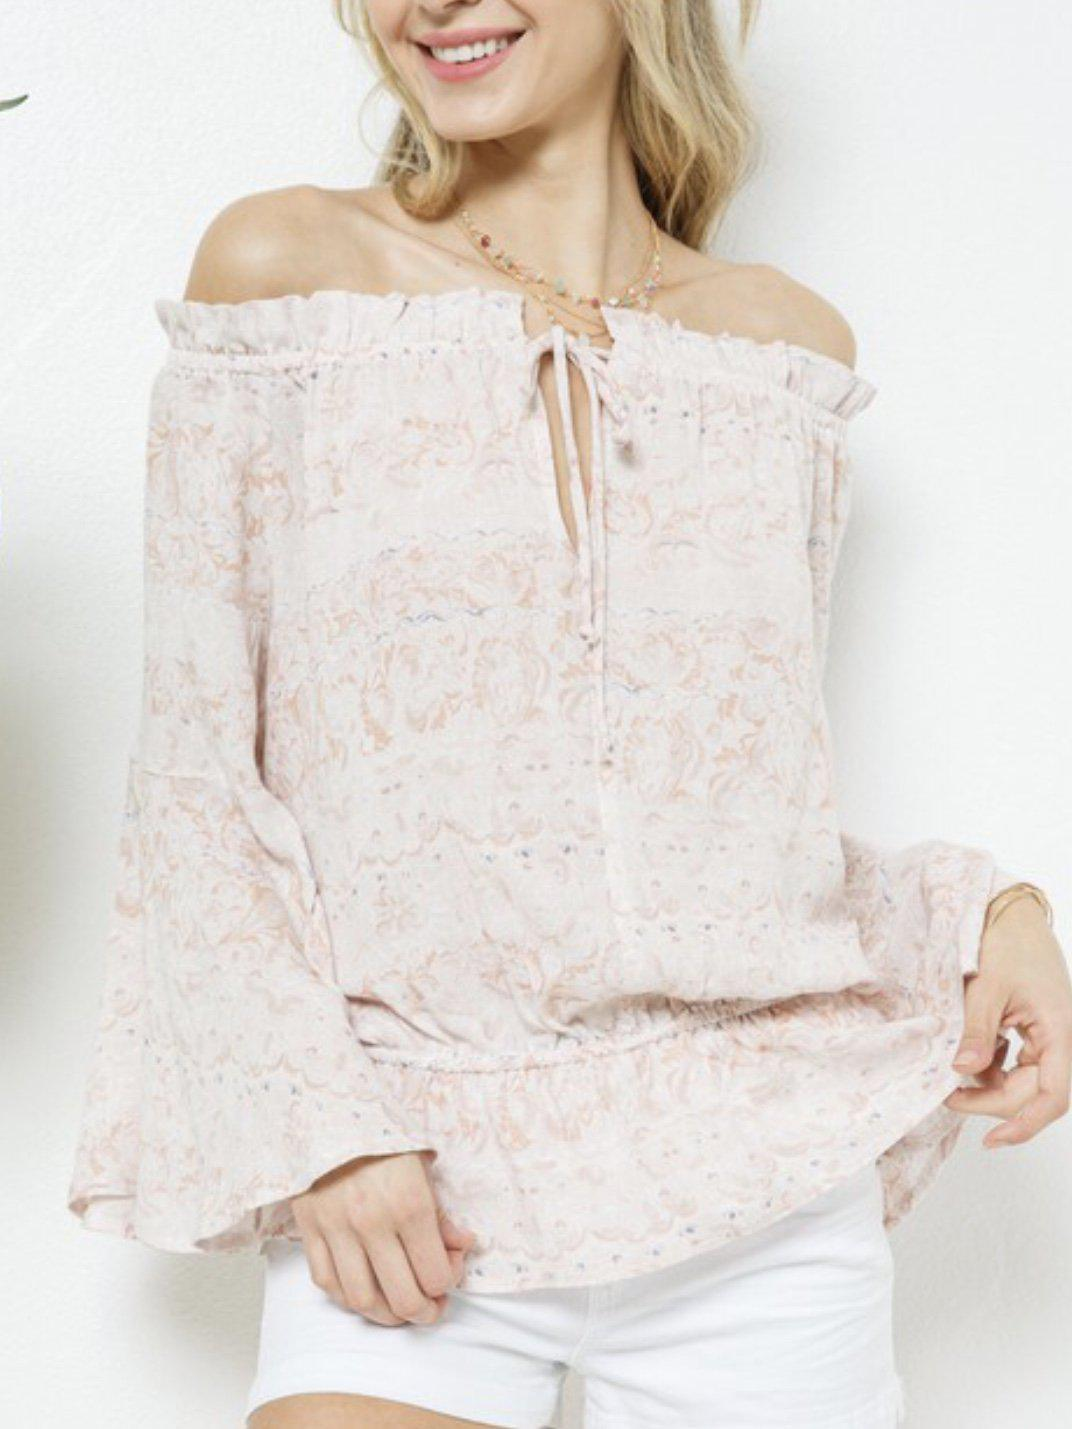 SUMMER KISSED BLUSH TOP-Women's TOP-New Arrivals-Runway Seven